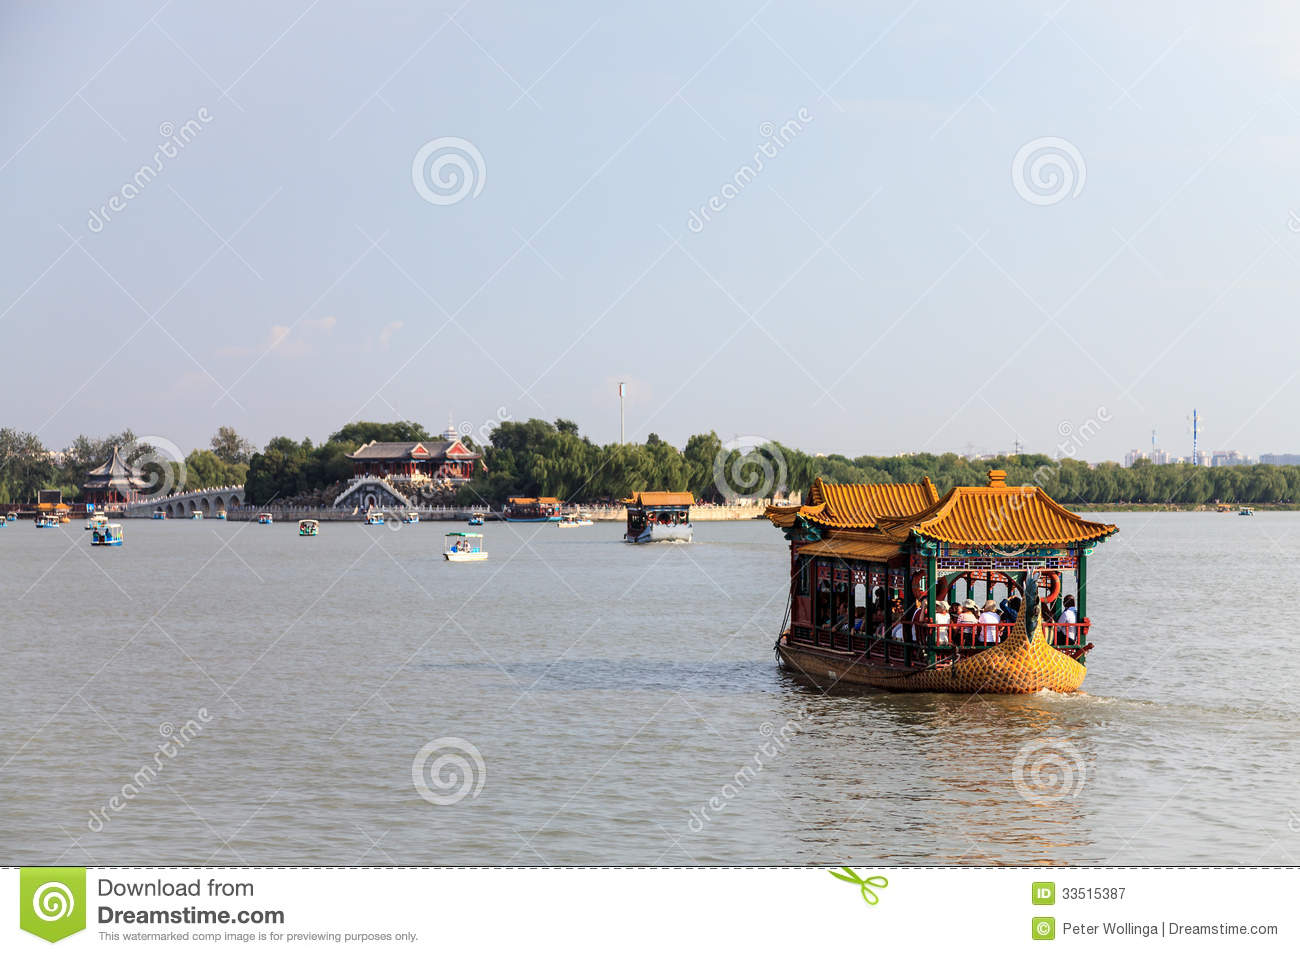 Dragon boat on lake Kunming at summer palace, Beijing